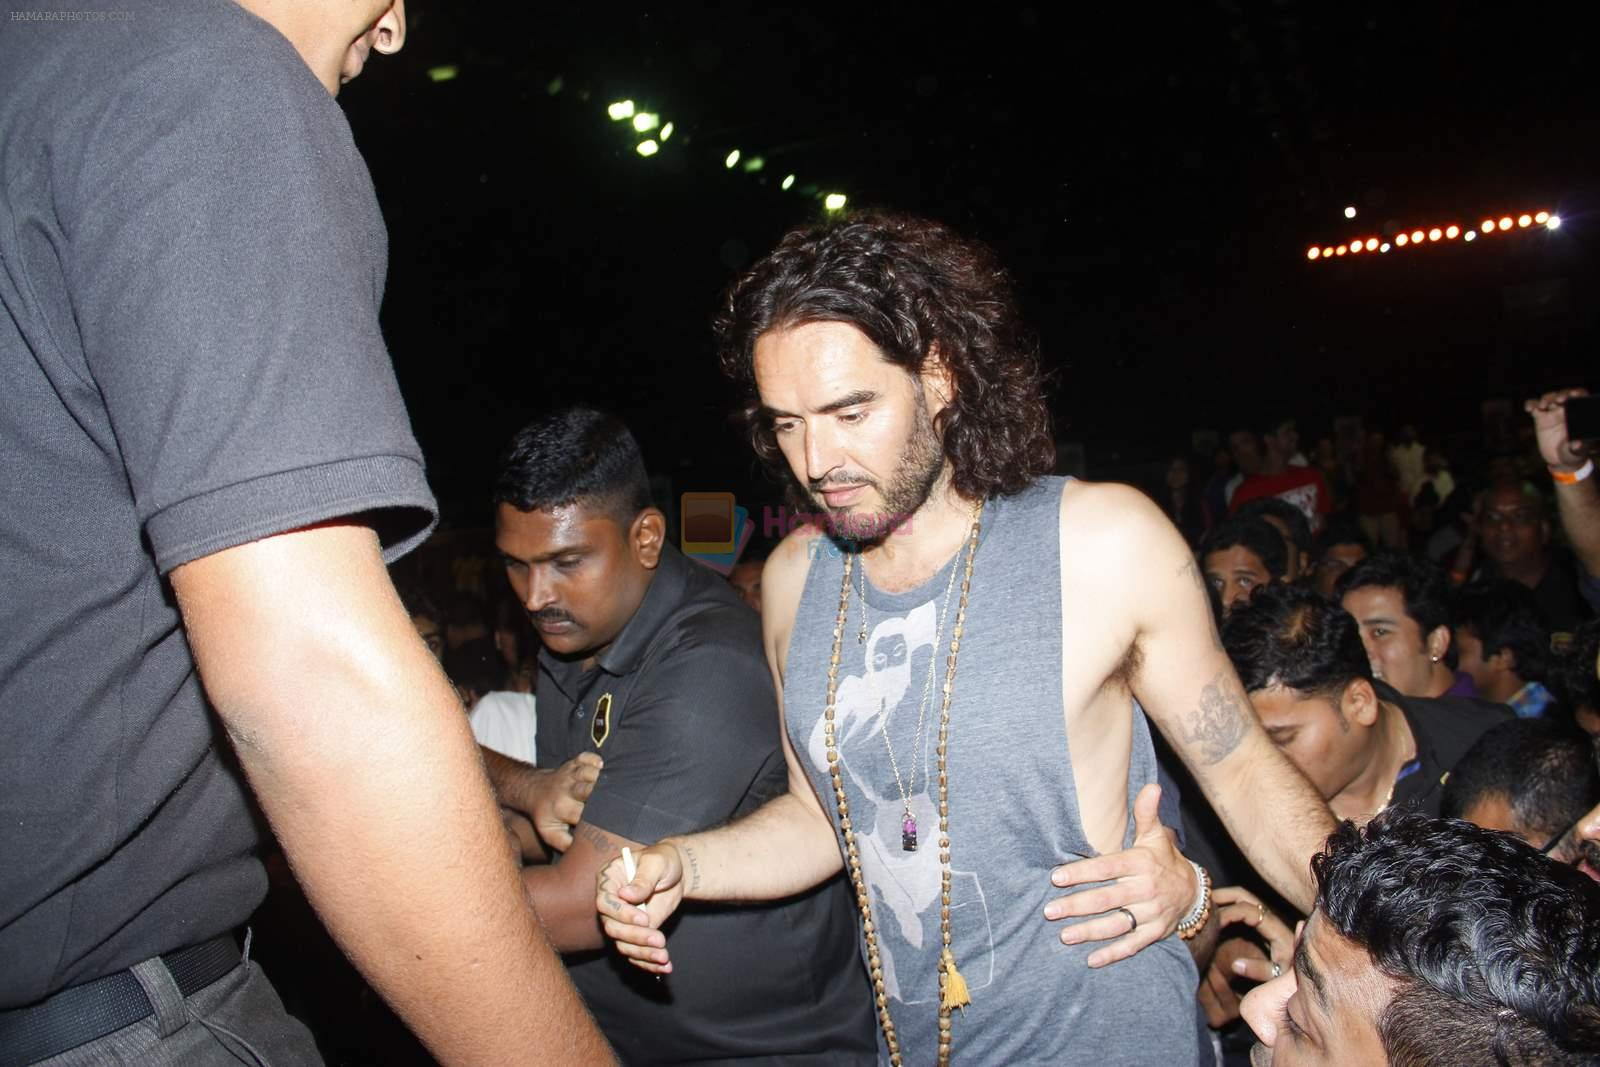 Russell Brand live show on 28th June 2015